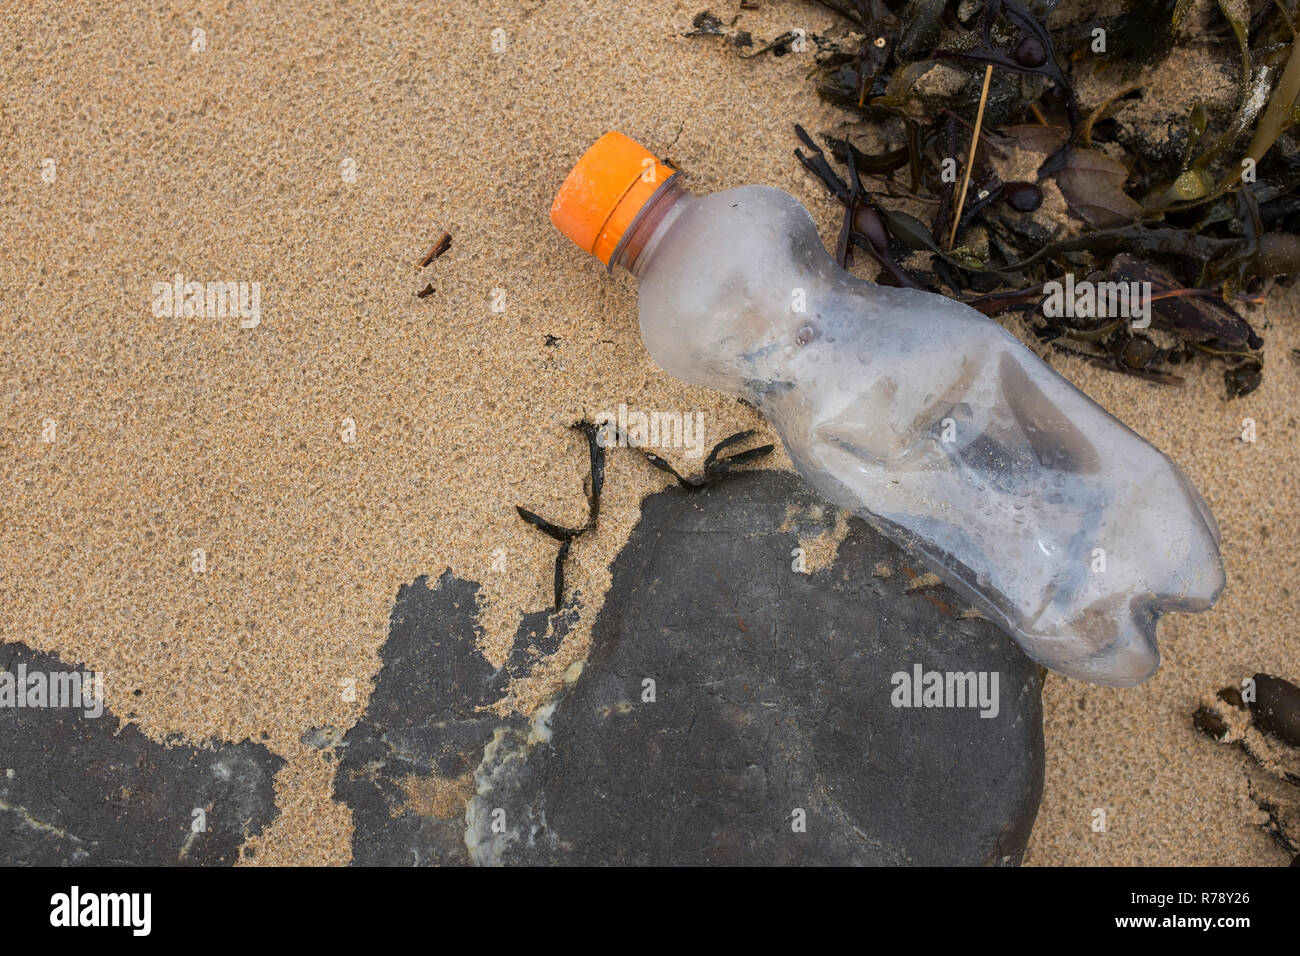 Small plastic water soft drink bottle on a beach - Stock Image